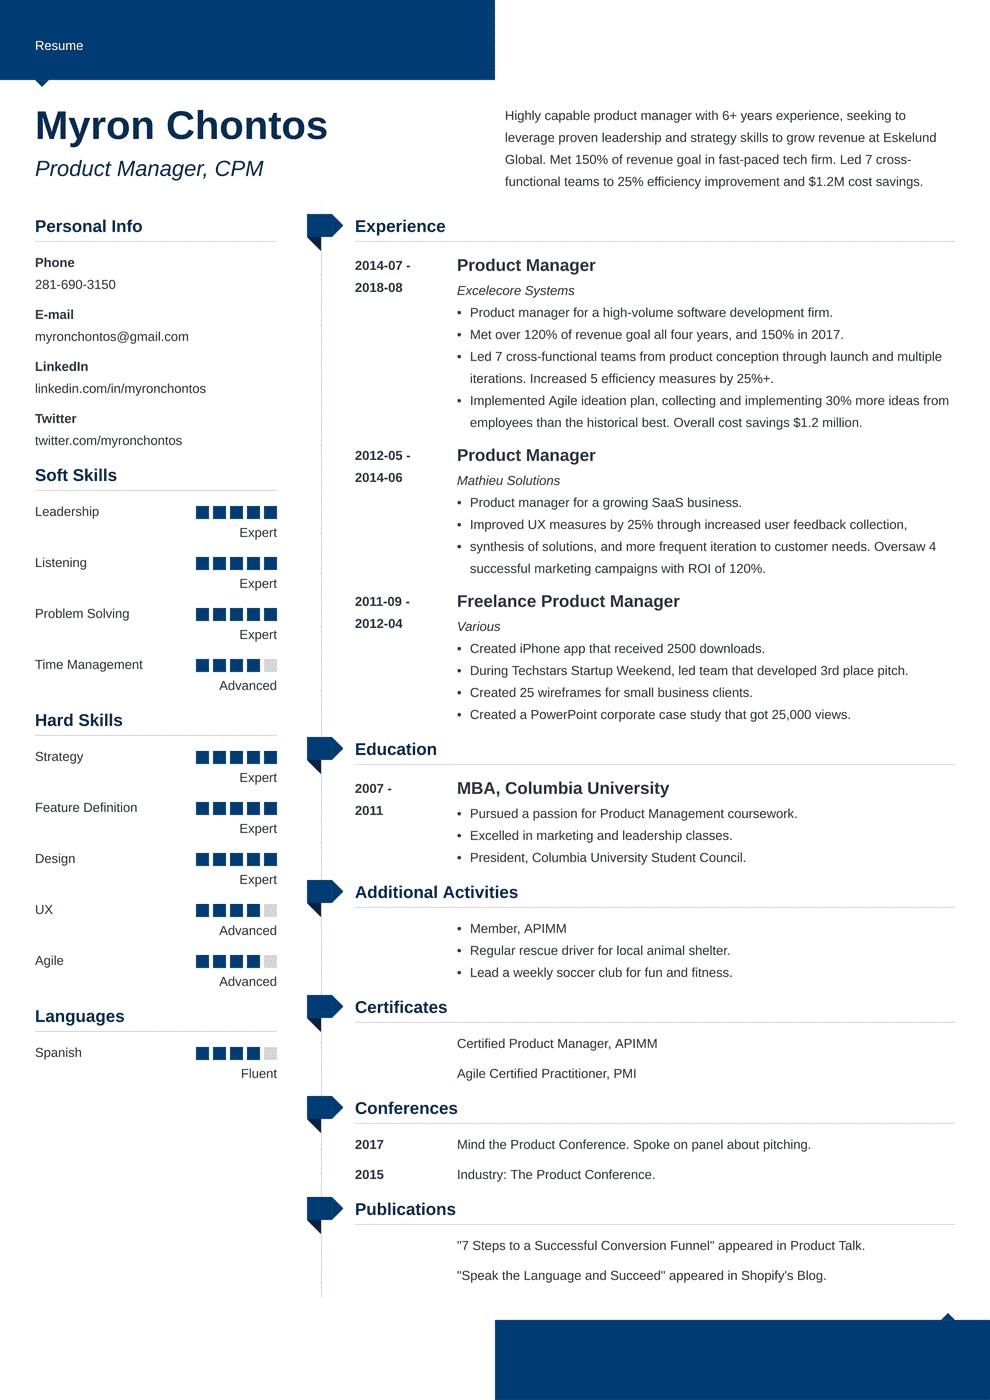 Product Manager Resume: Sample and Complete Guide [+20 Examples]